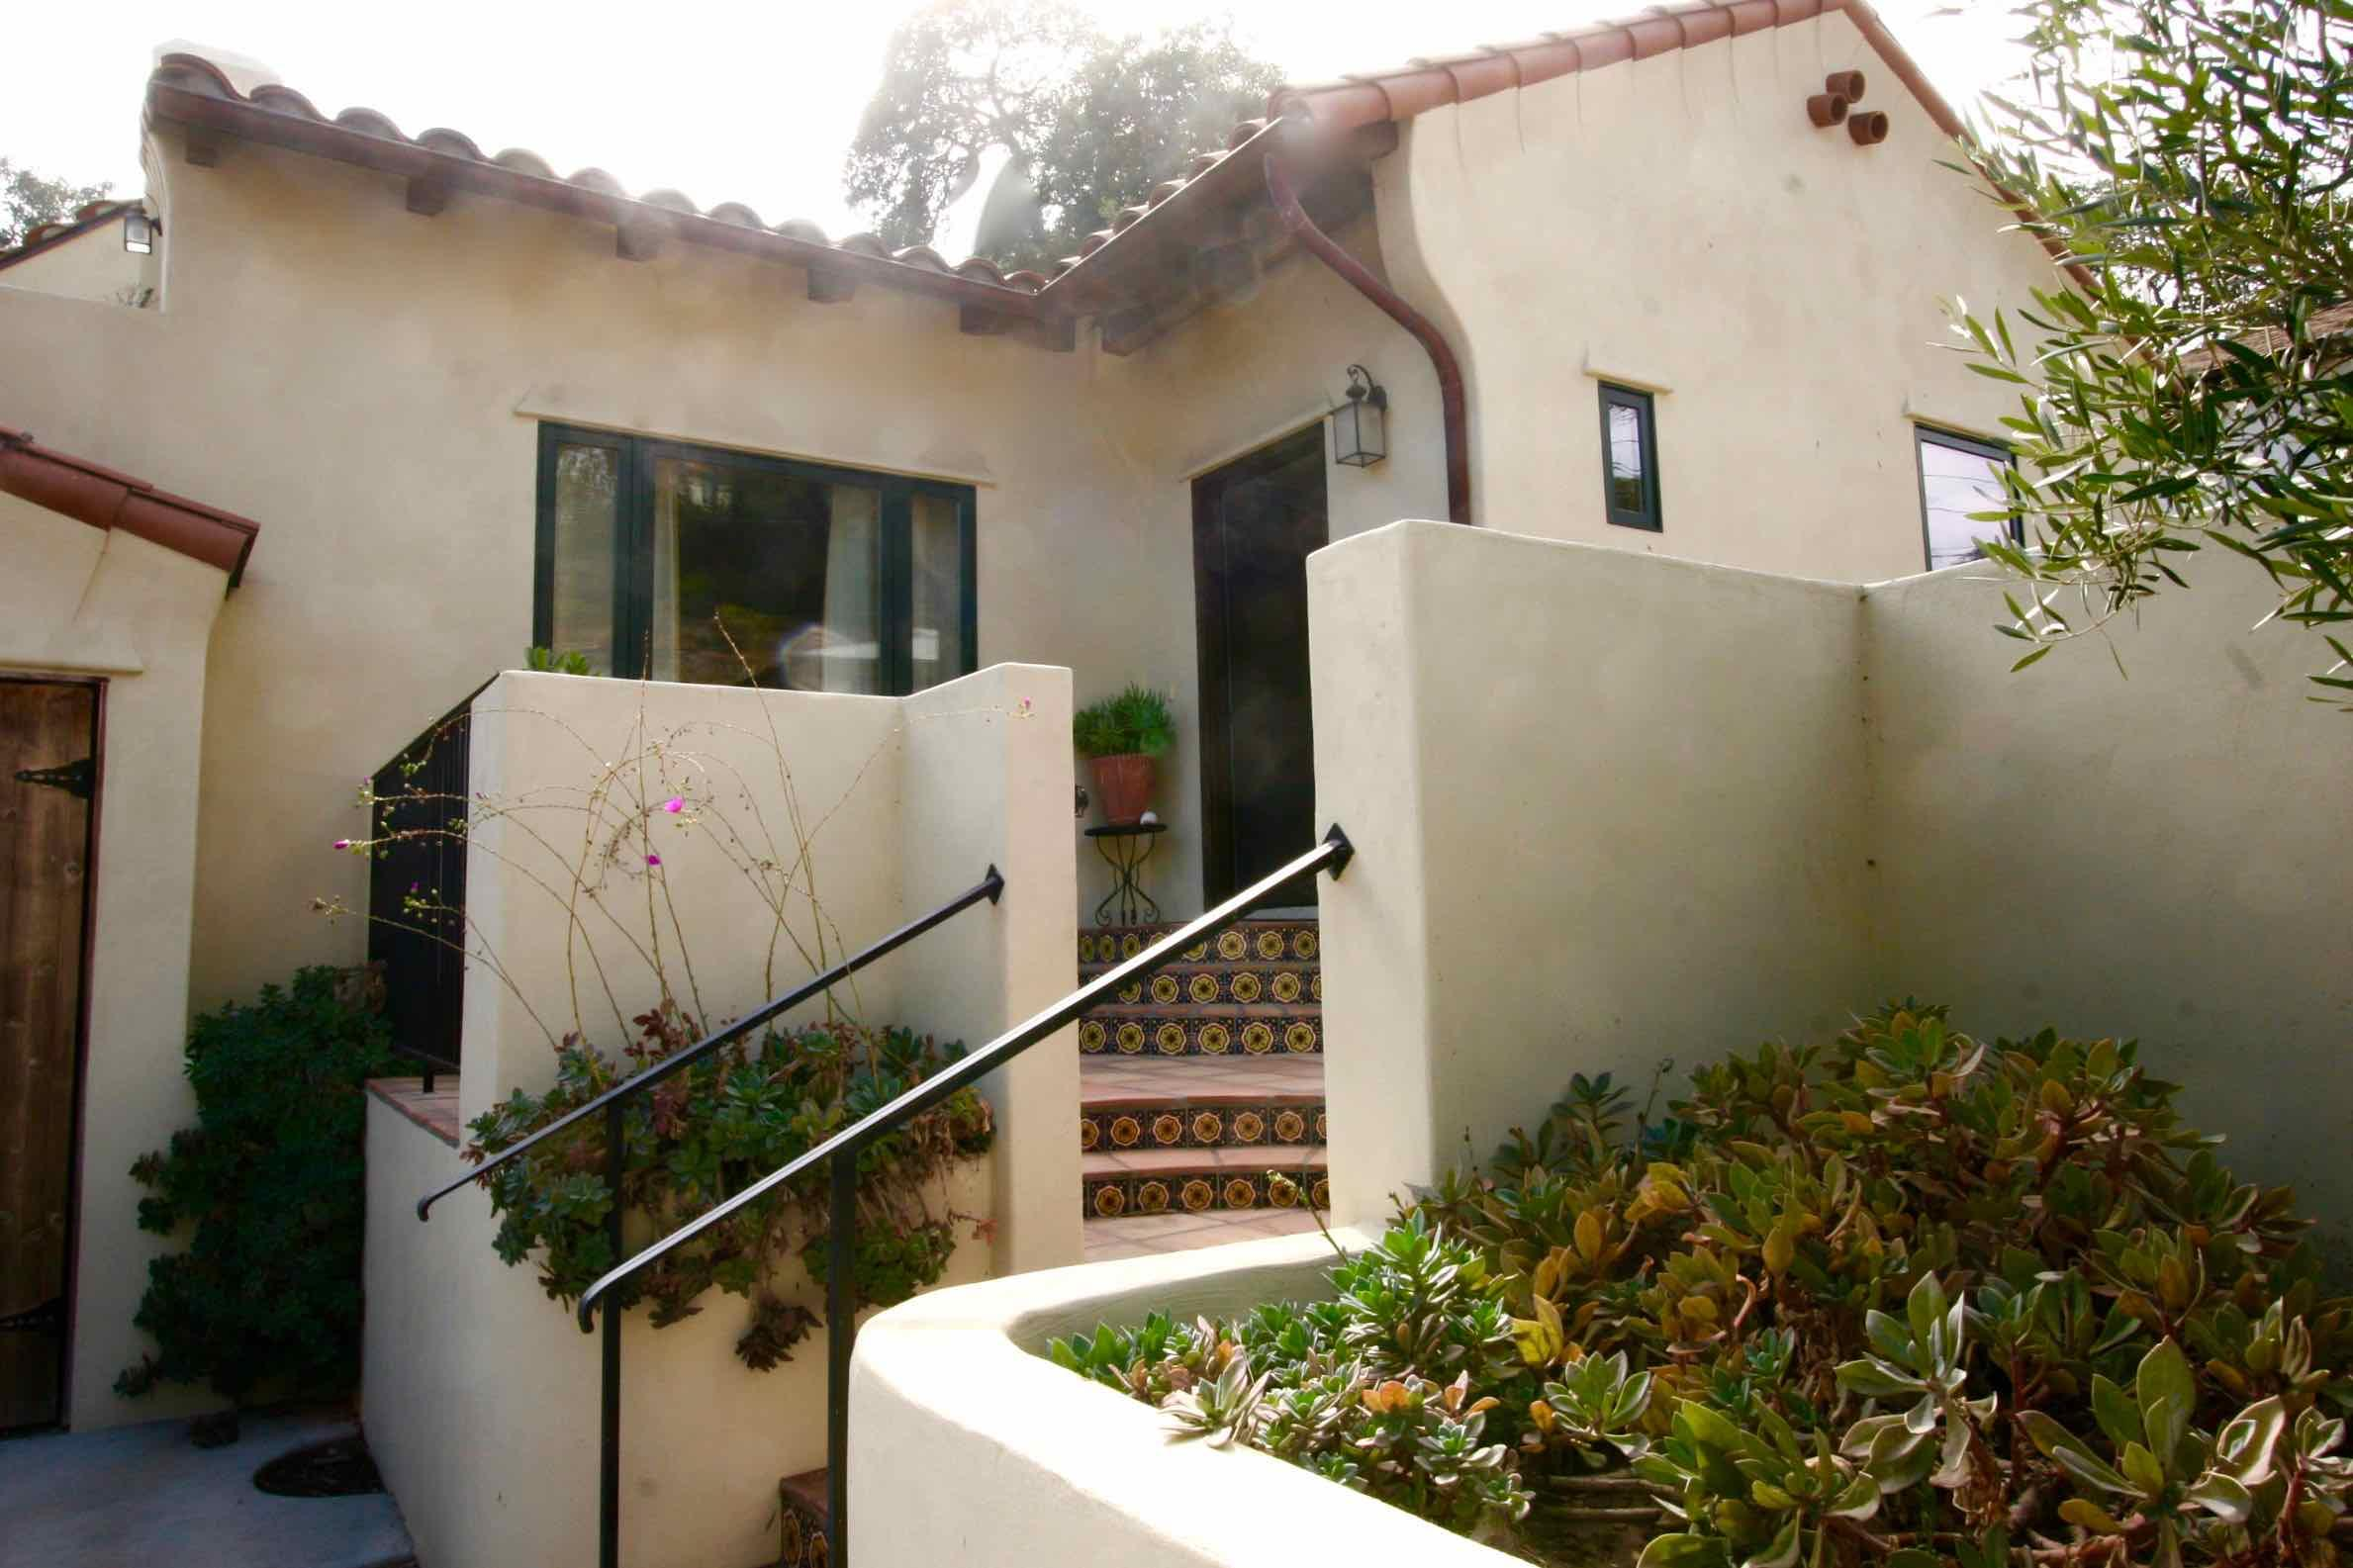 Property photo for 1781 Calle Poniente Santa Barbara, California 93101 - 16-3824